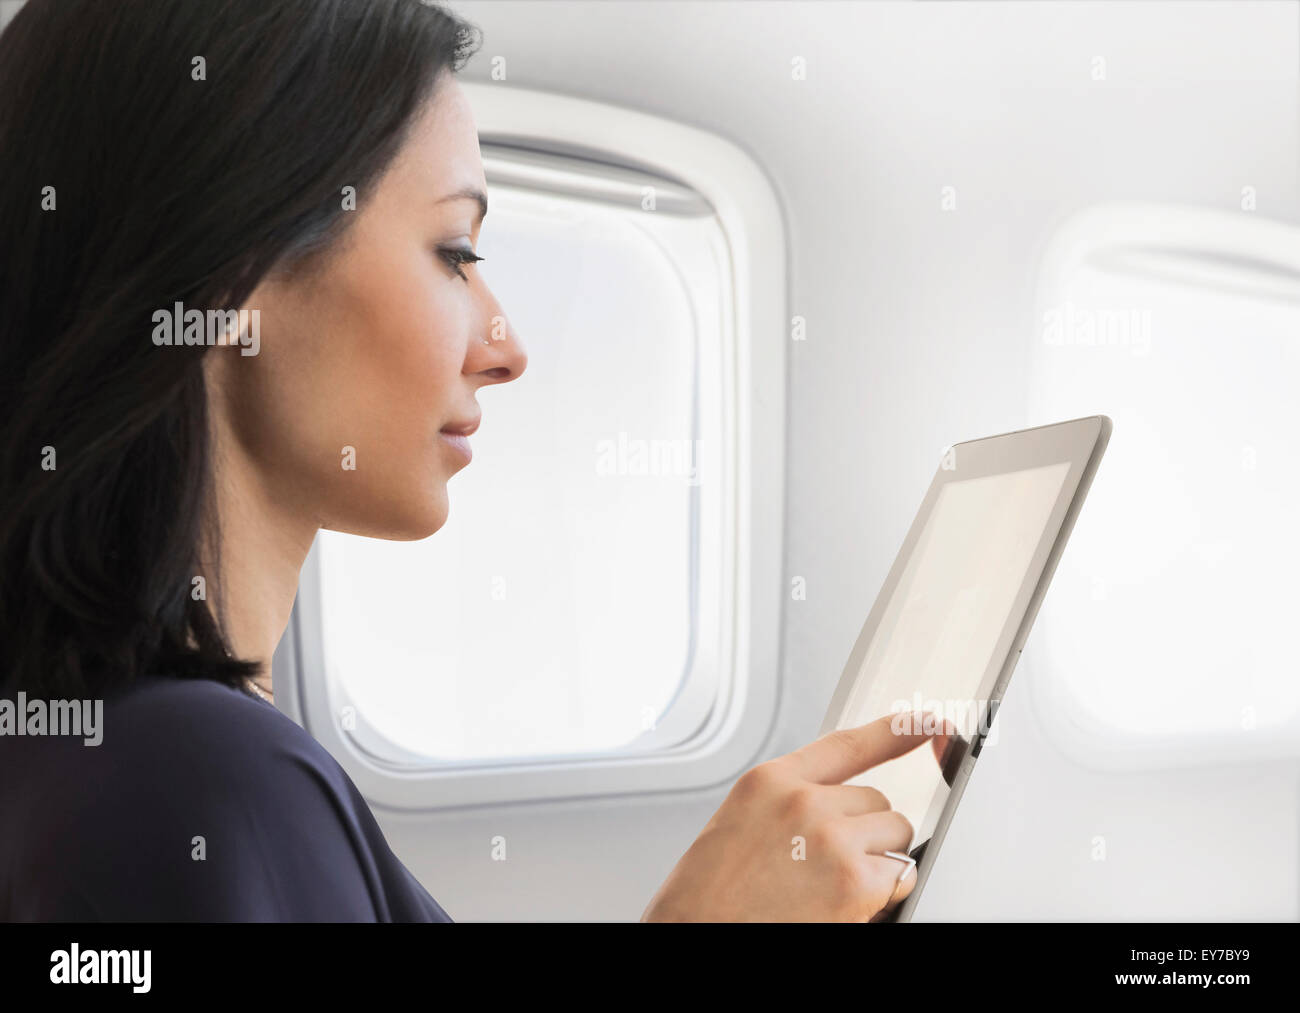 Young woman using tablet on plane - Stock Image